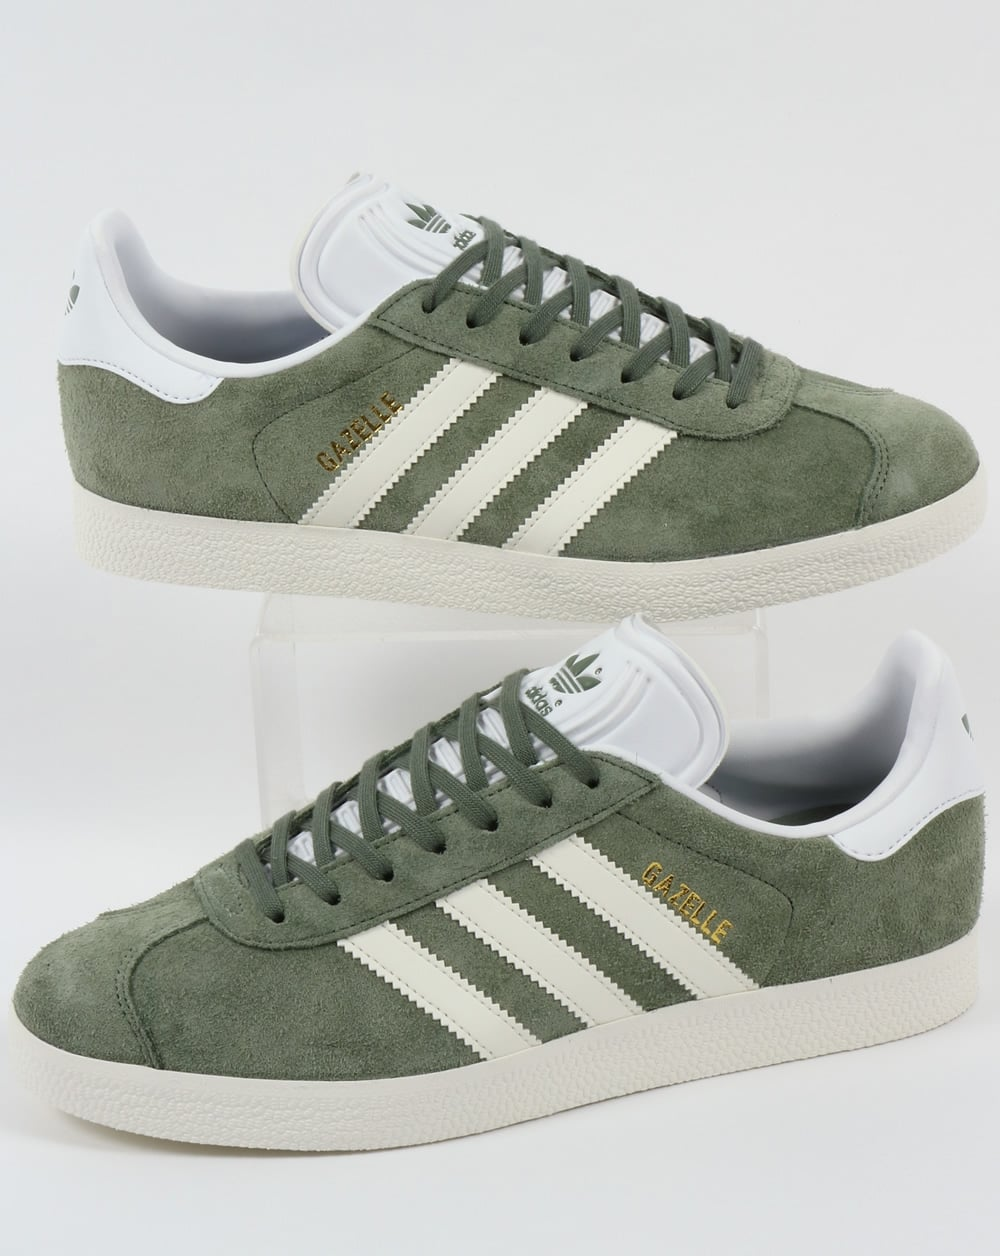 Adidas Gazelle Trainers Trace Green Off White Adidas